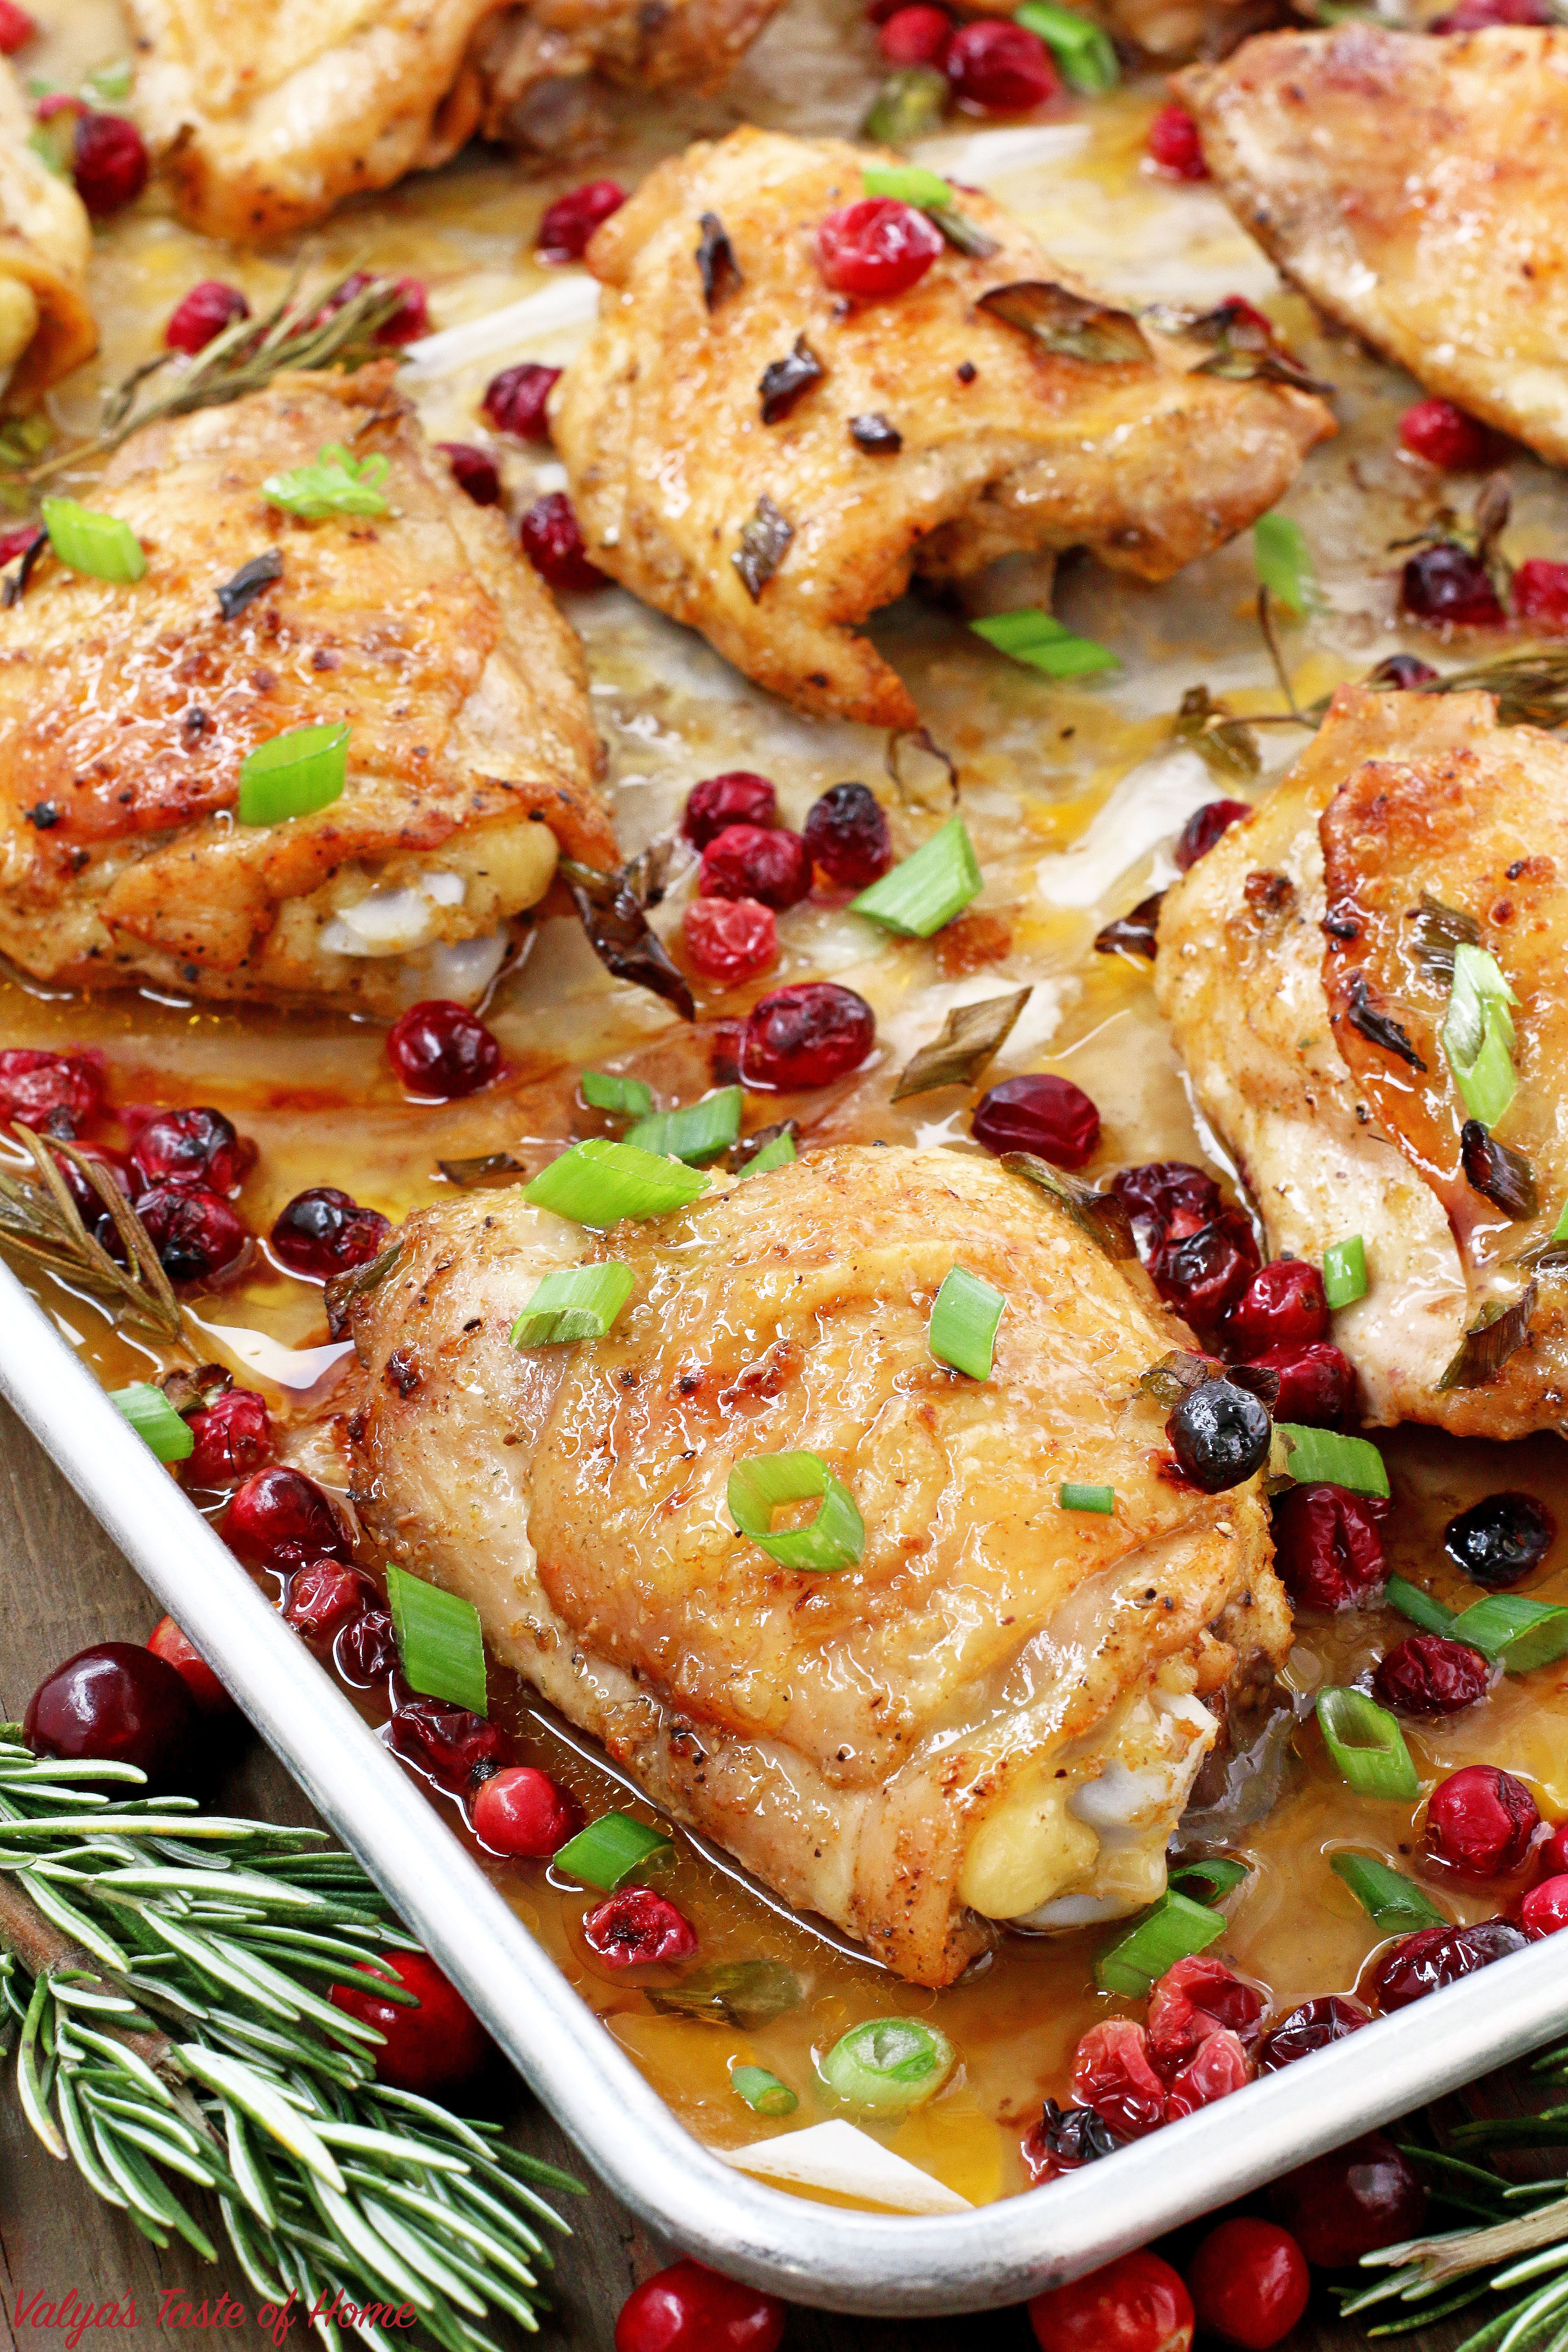 Pin By Lesianochka On Chicken Recipes In 2020 Baked Chicken Thighs Cranberry Baking Baked Chicken Recipes